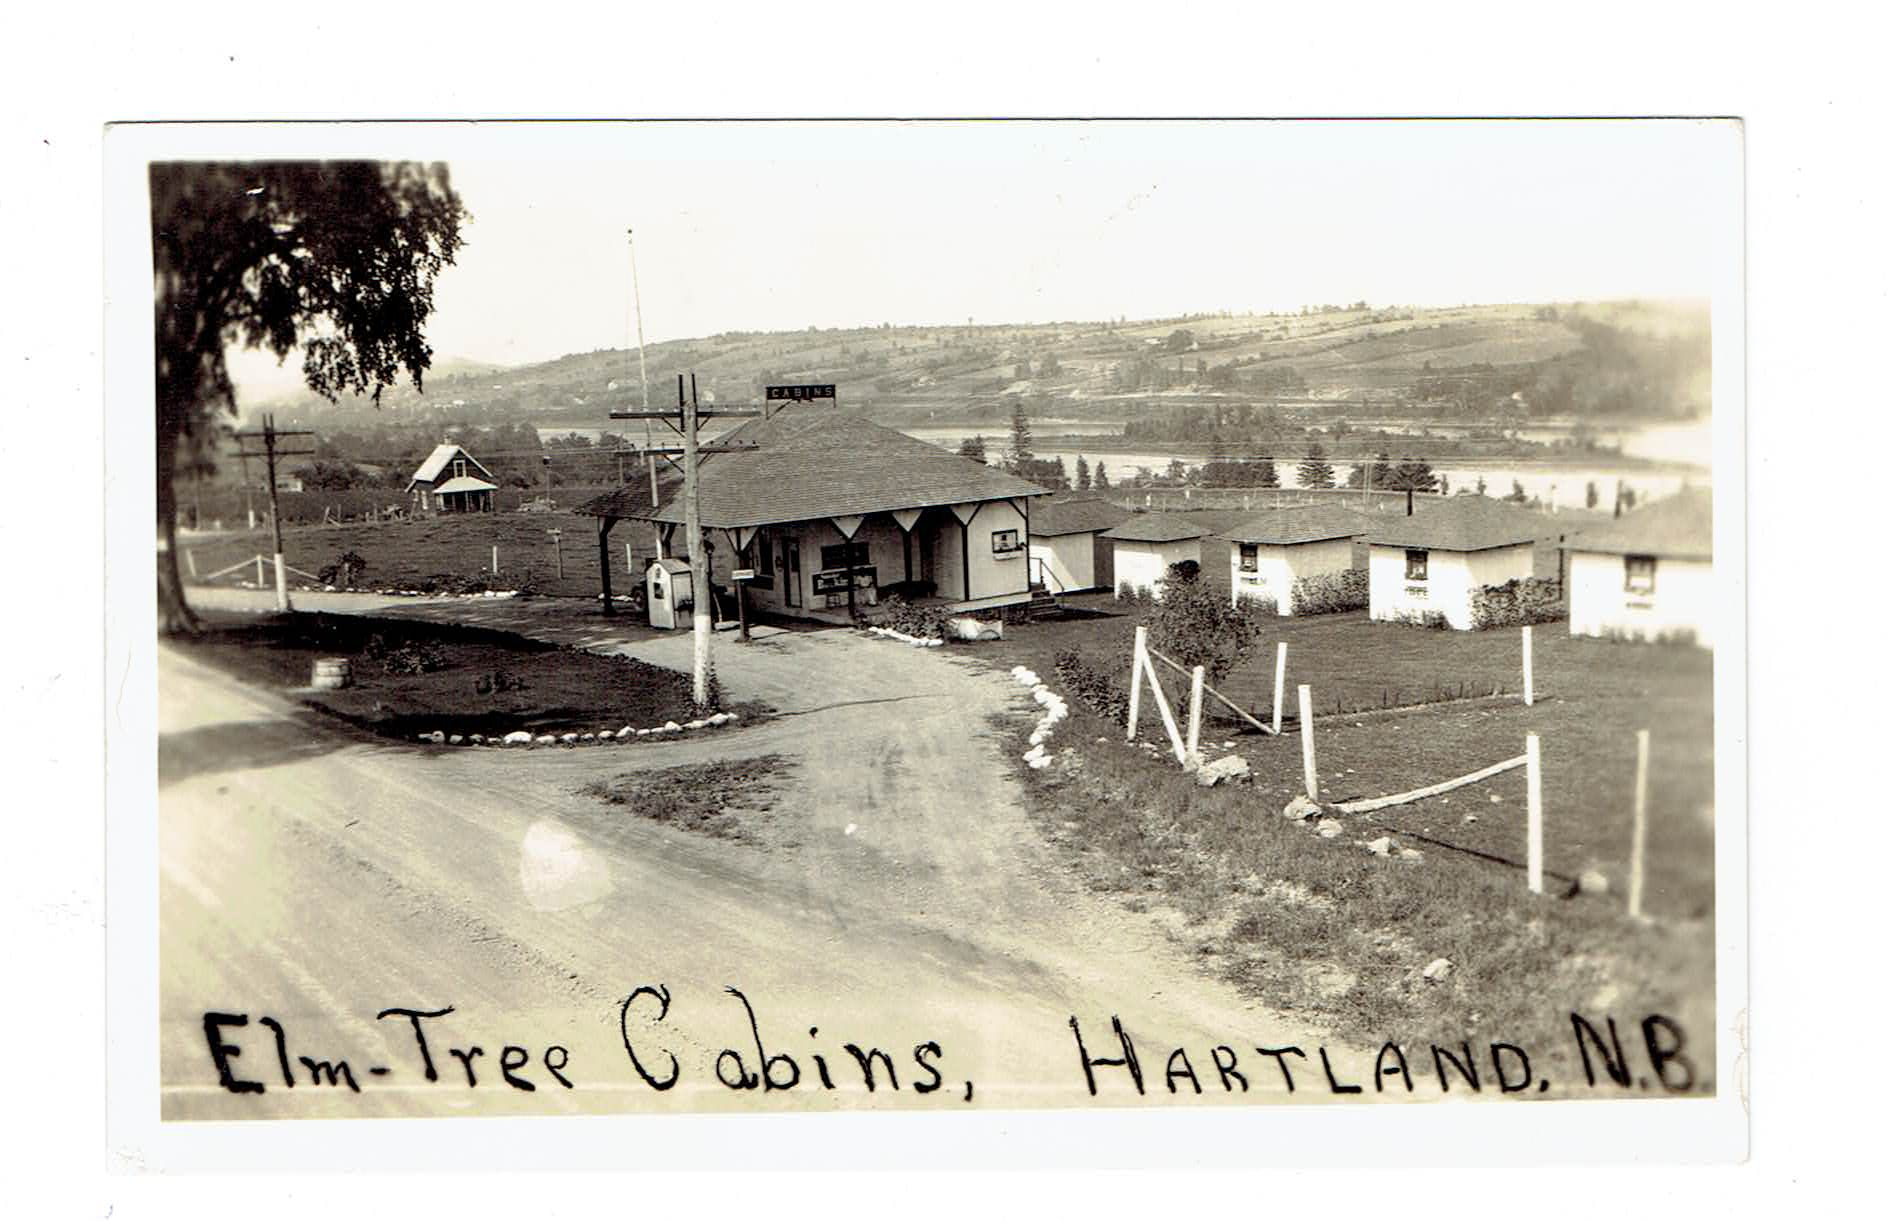 Canada Hartland, NB. Elm Tree Cabins On The Lake. RPPC Postcard. Canada